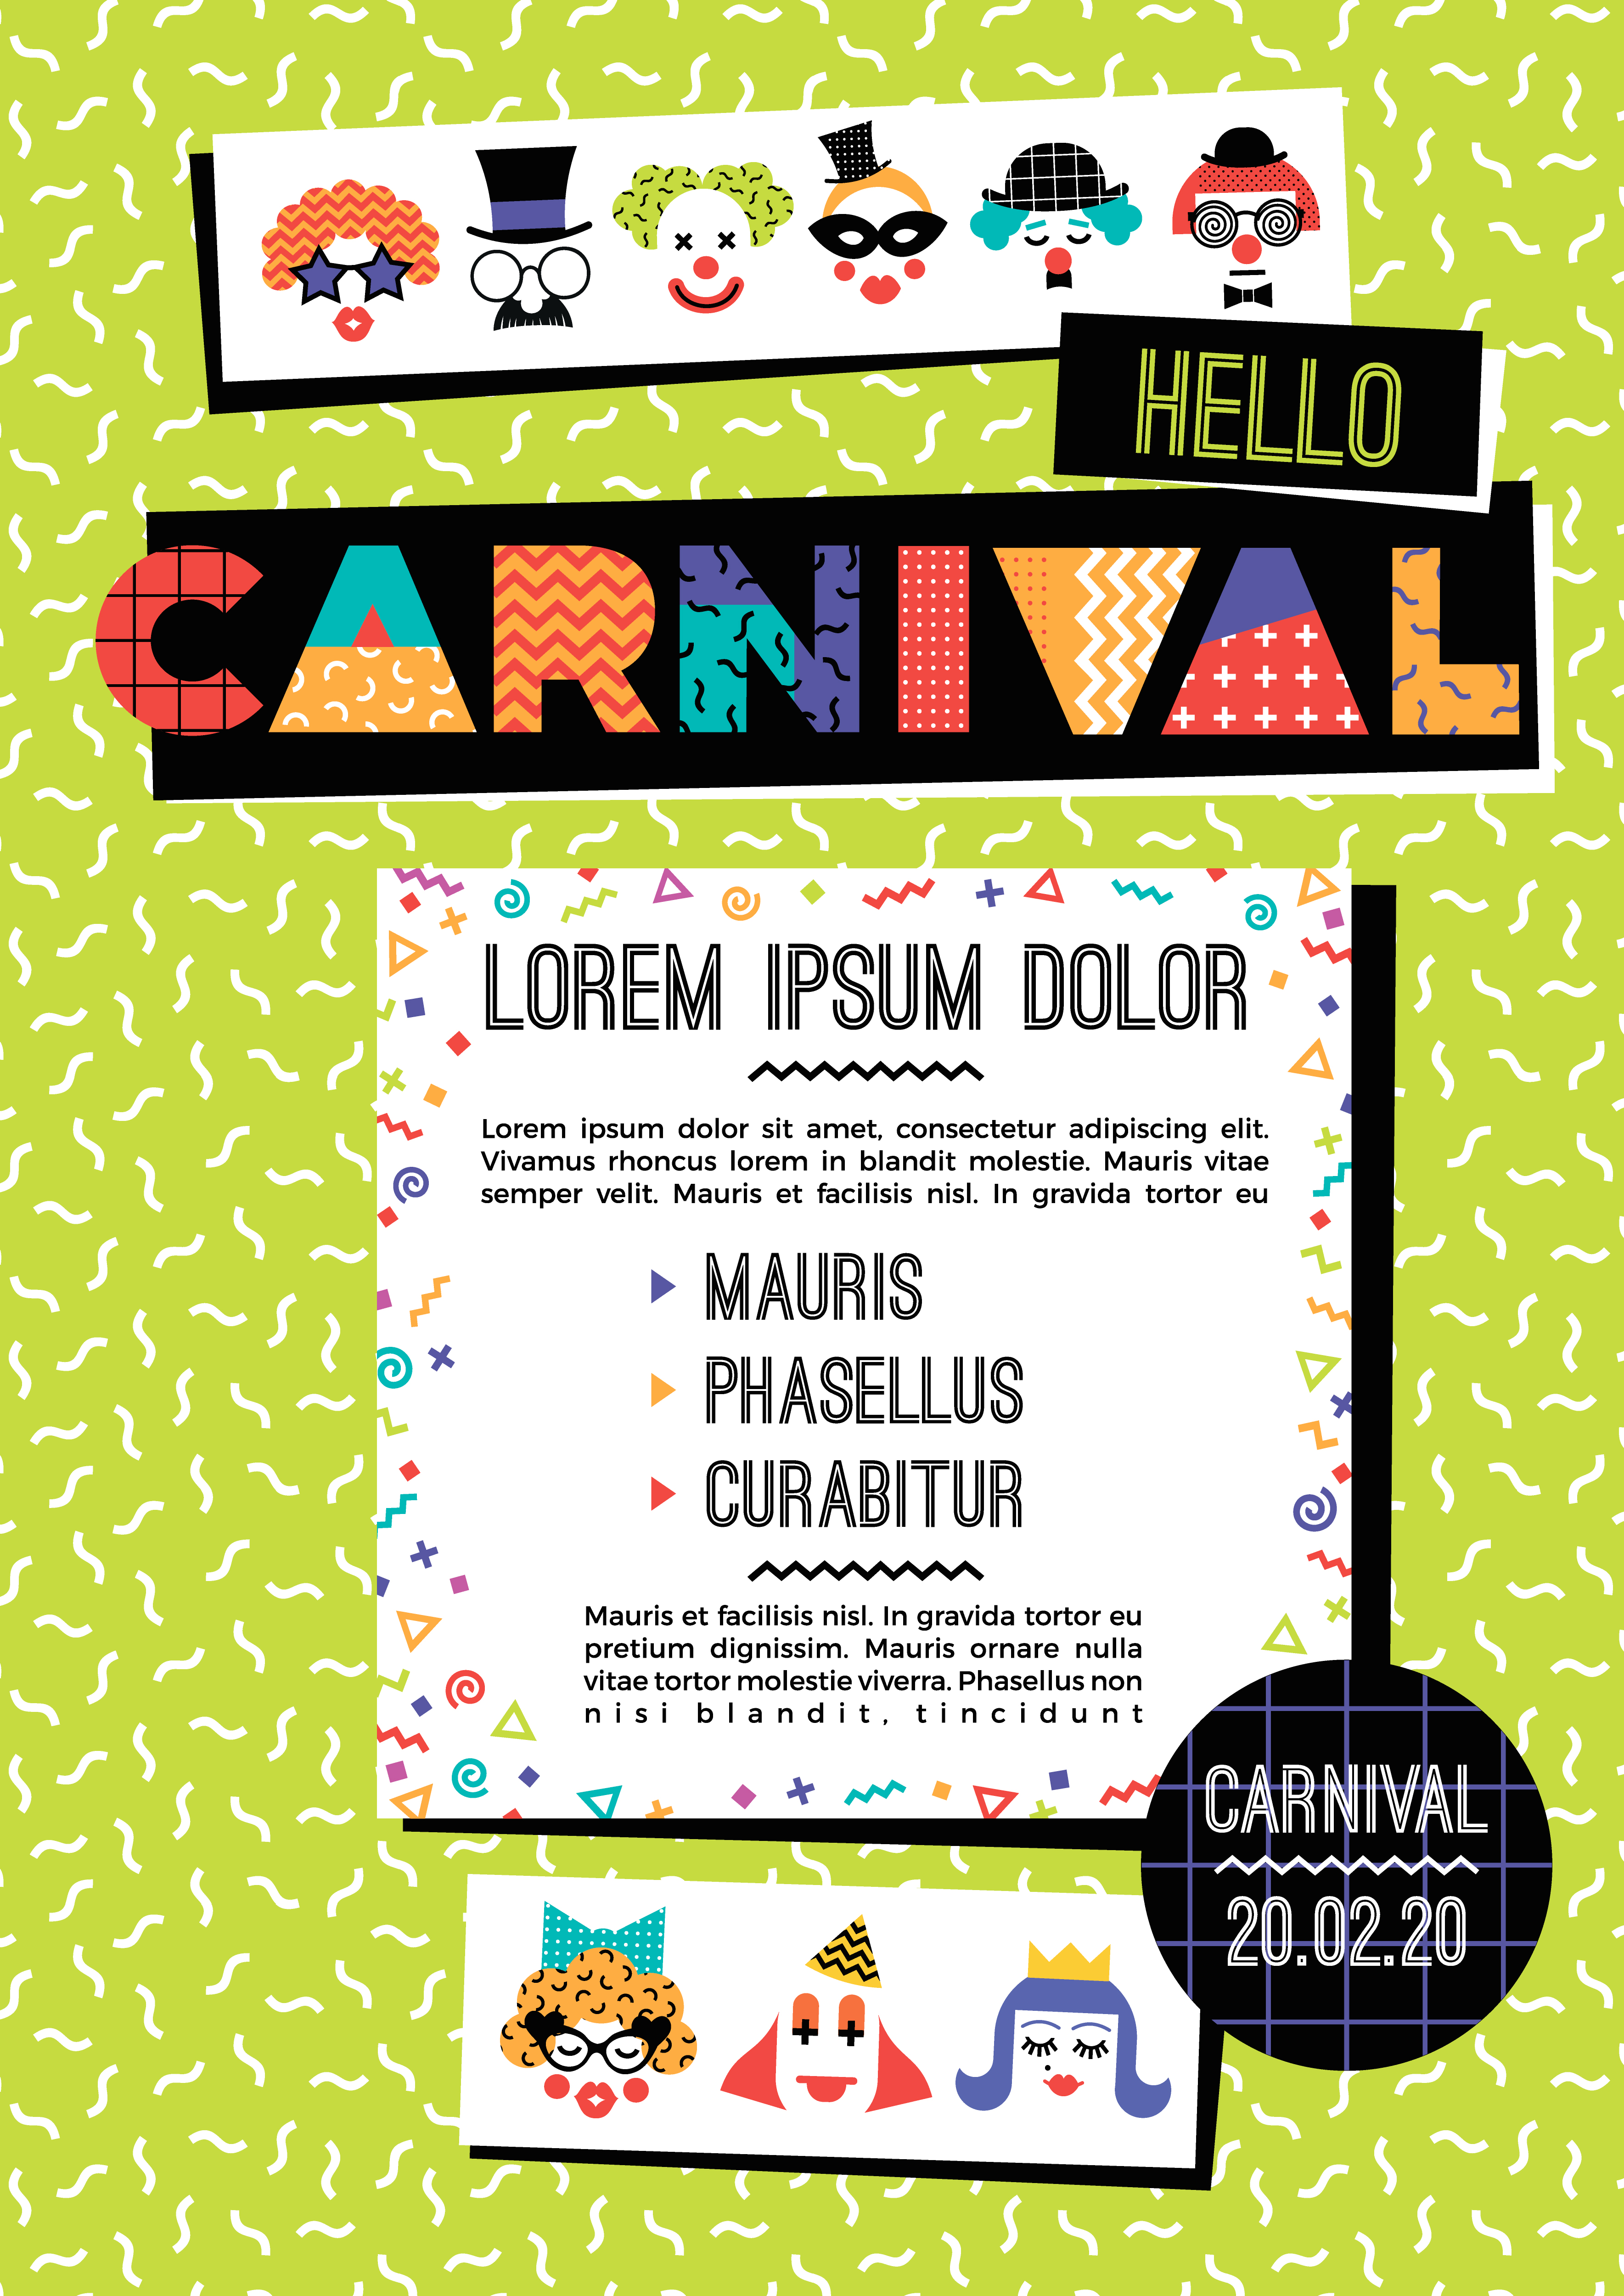 Carnival template in Memphis style - Download Free Vectors ...